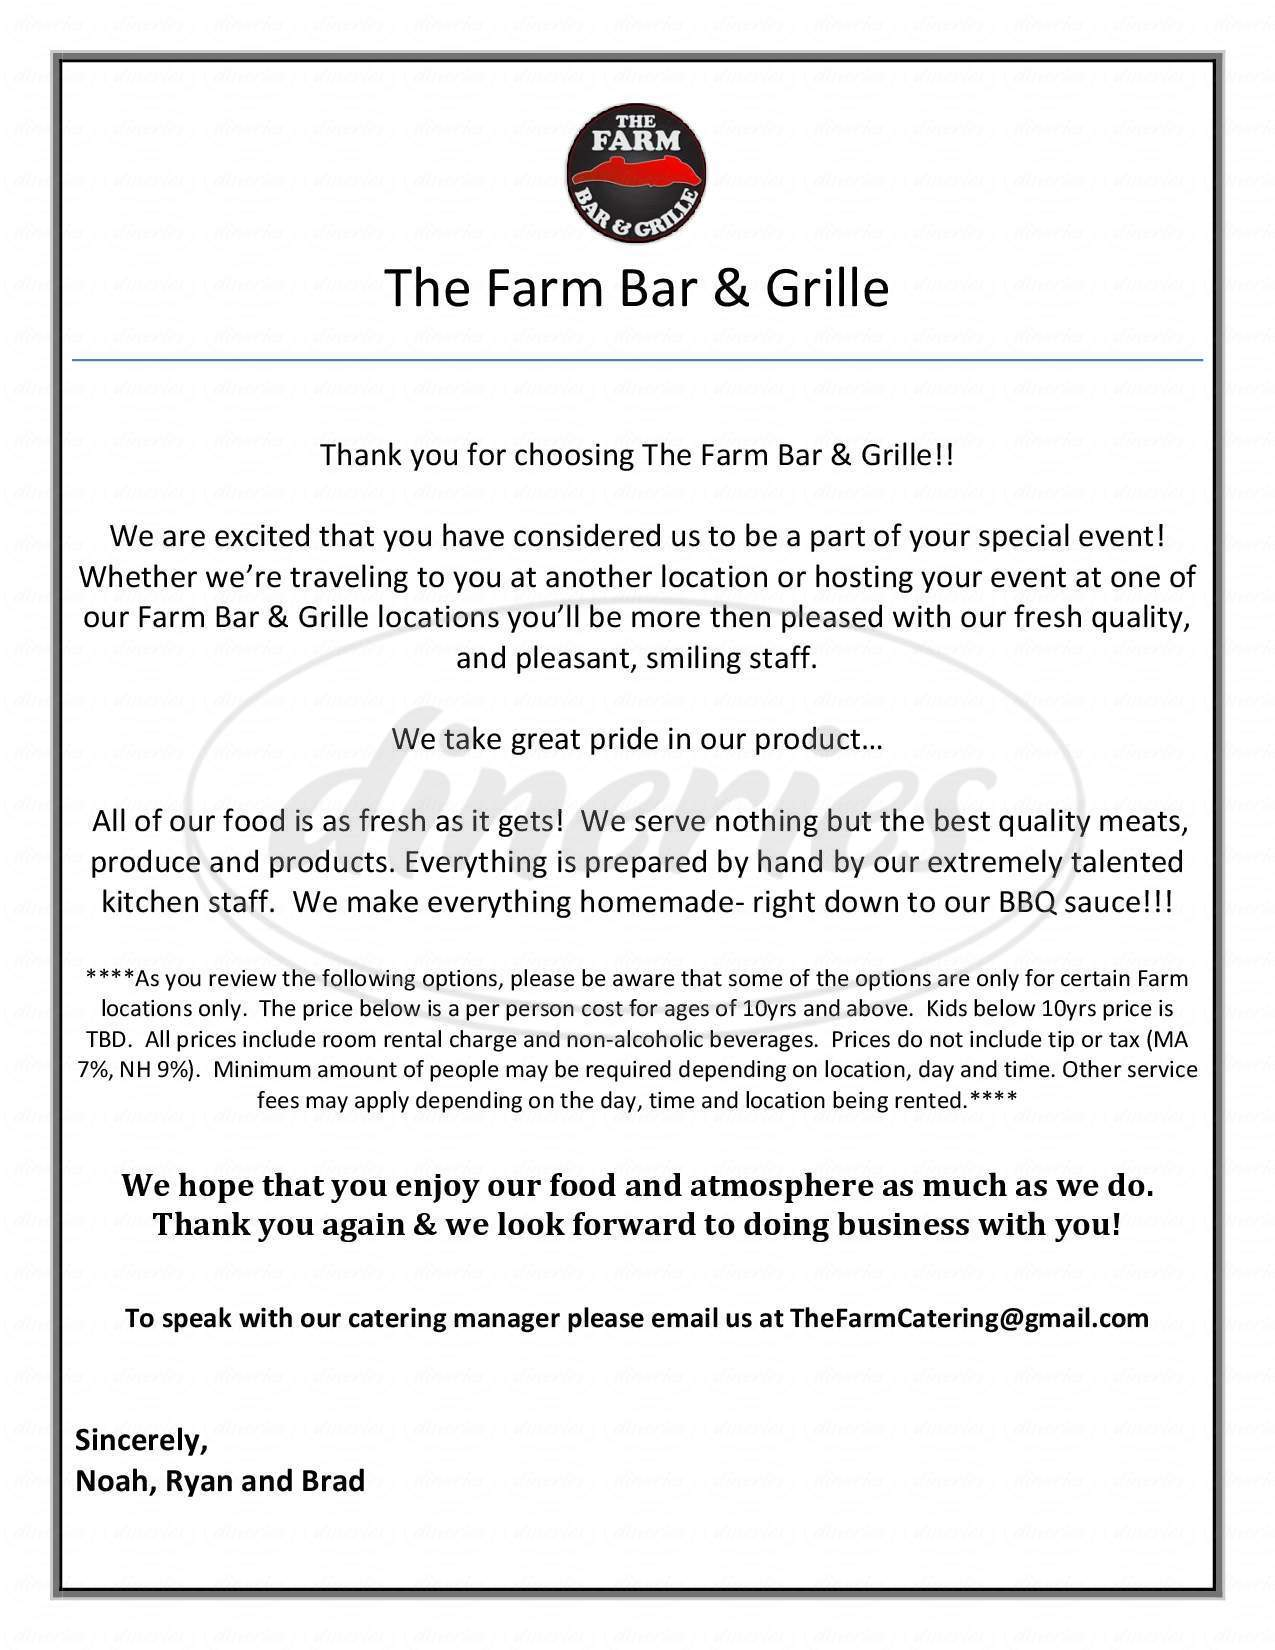 menu for The Farm Bar & Grille